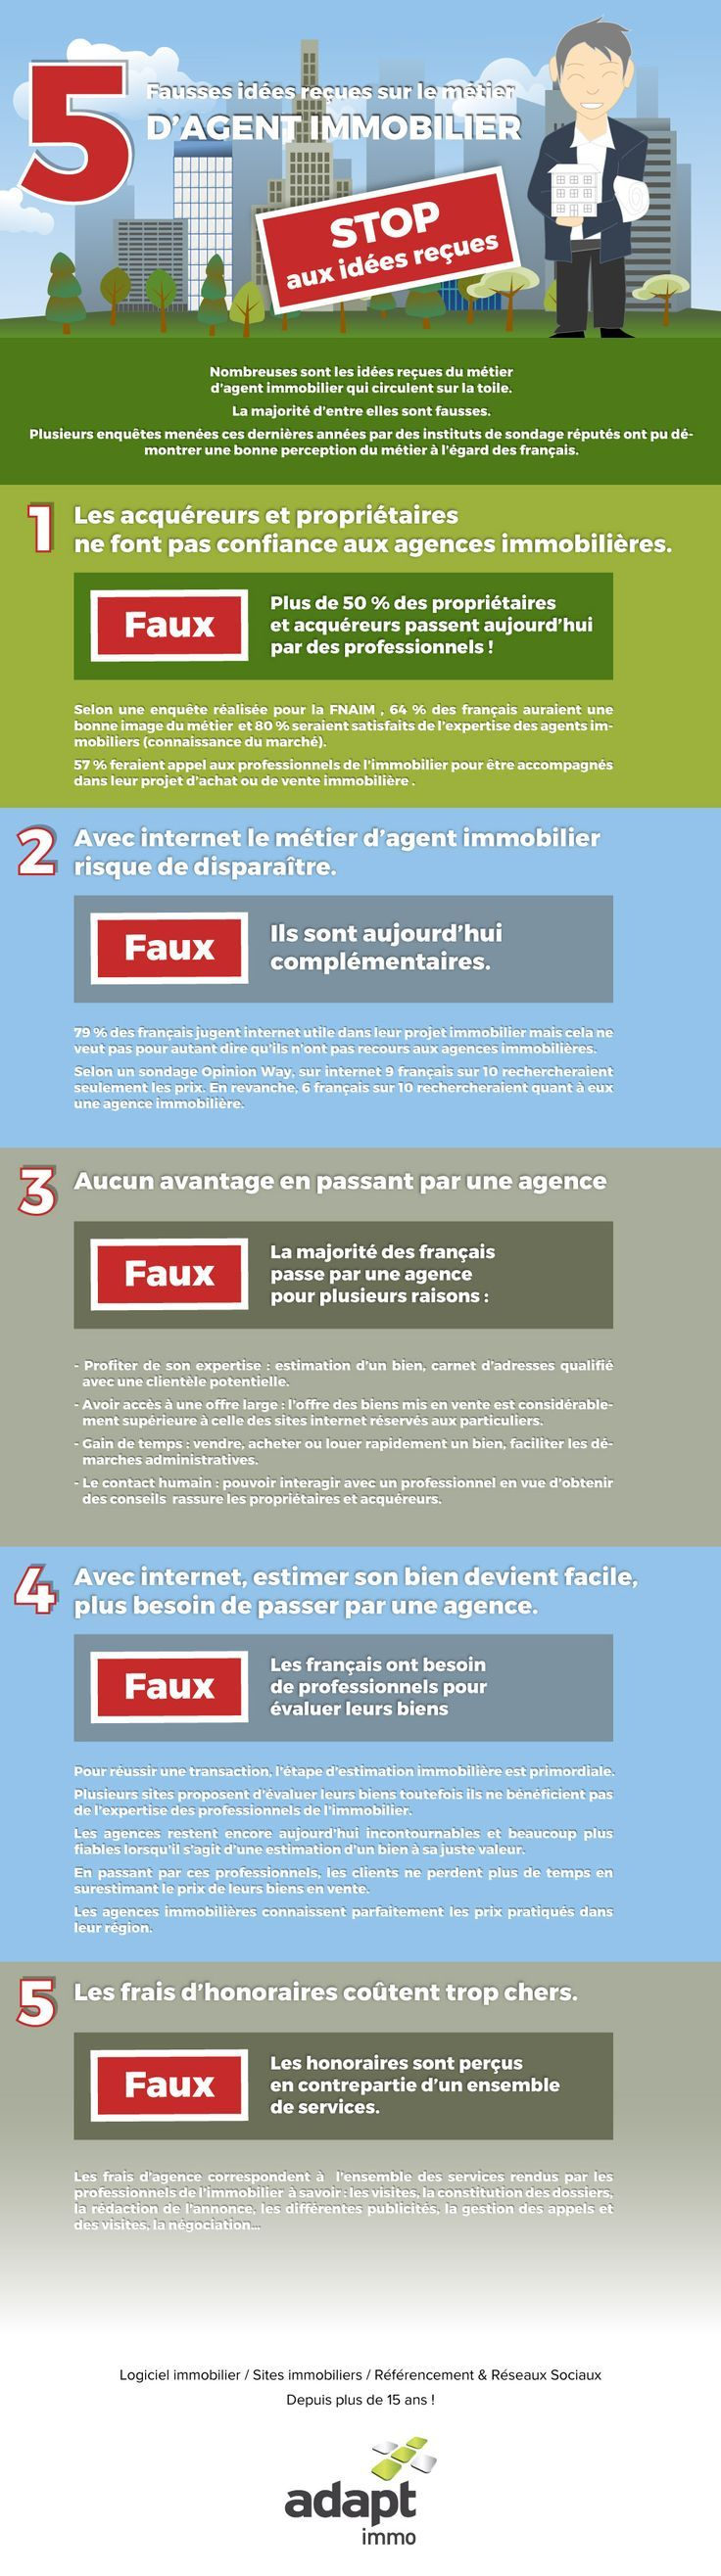 Business Infographic Infographie 5 Fausses Idées Reçues Du Métier D Agent Immobilier Real Infographicnow Com Your Number One Source For Daily I Learning Time Business Infographic Infographic